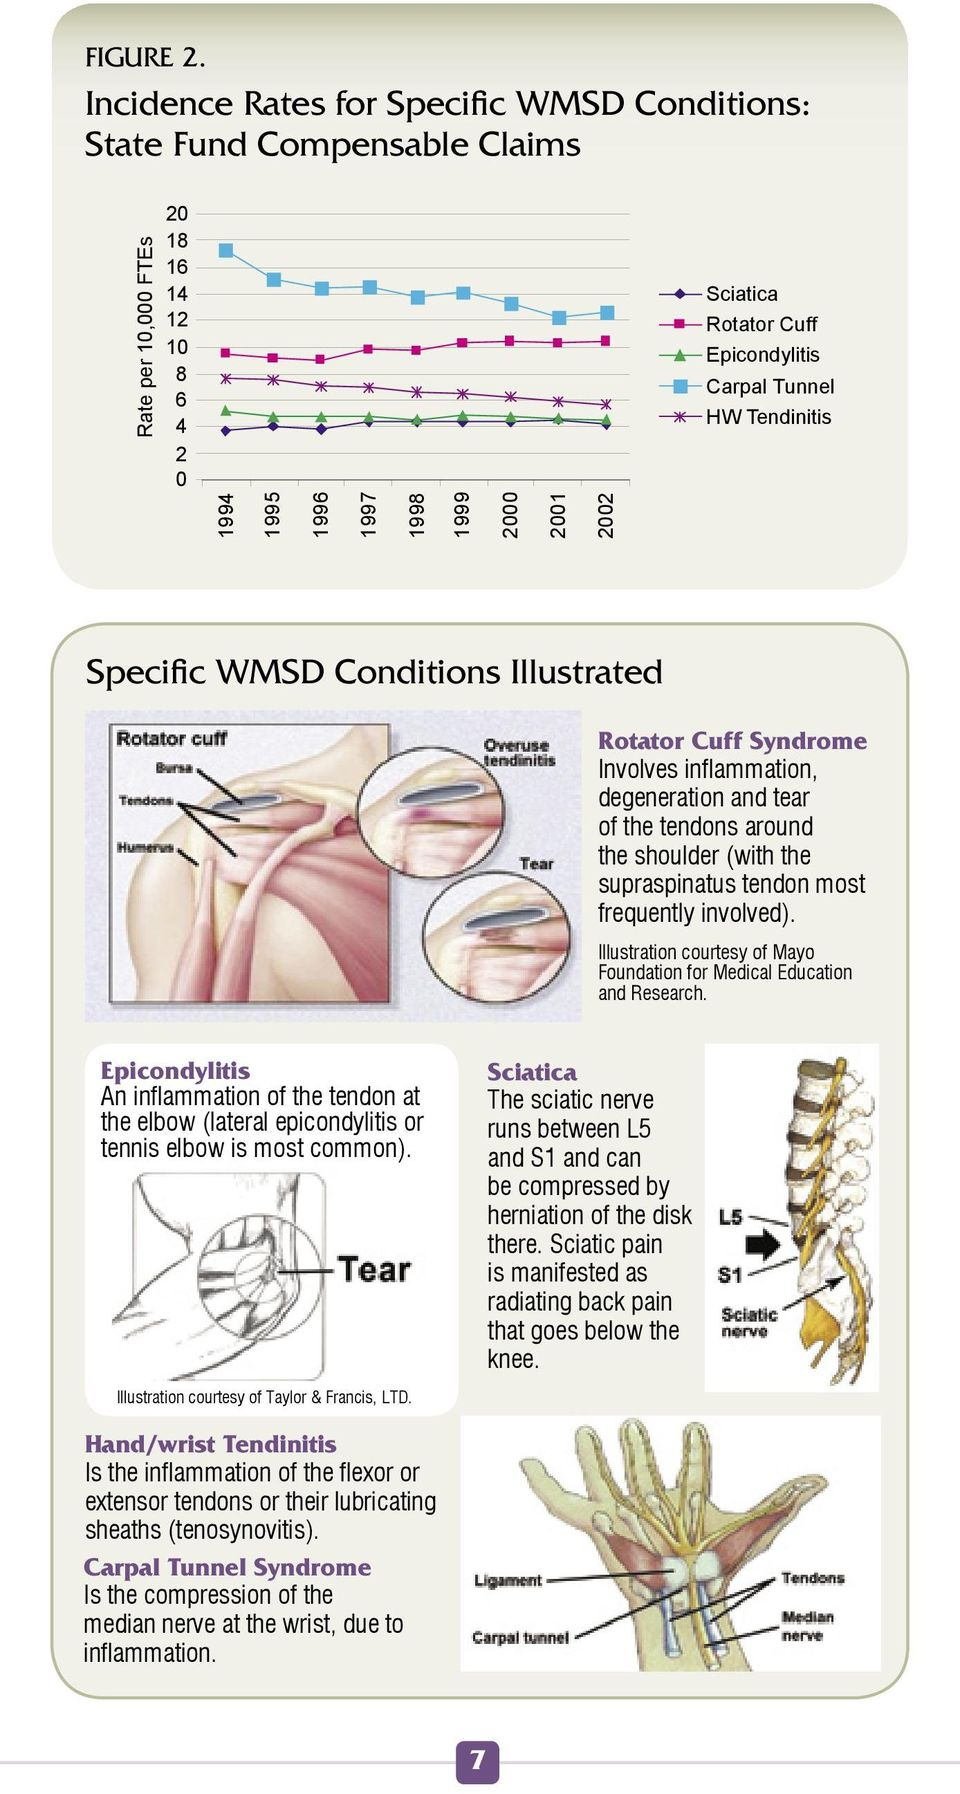 1996 1997 1998 1999 2000 2001 2002 Specific WMSD Conditions Illustrated Rotator Cuff Syndrome Involves inflammation, degeneration and tear of the tendons around the shoulder (with the supraspinatus